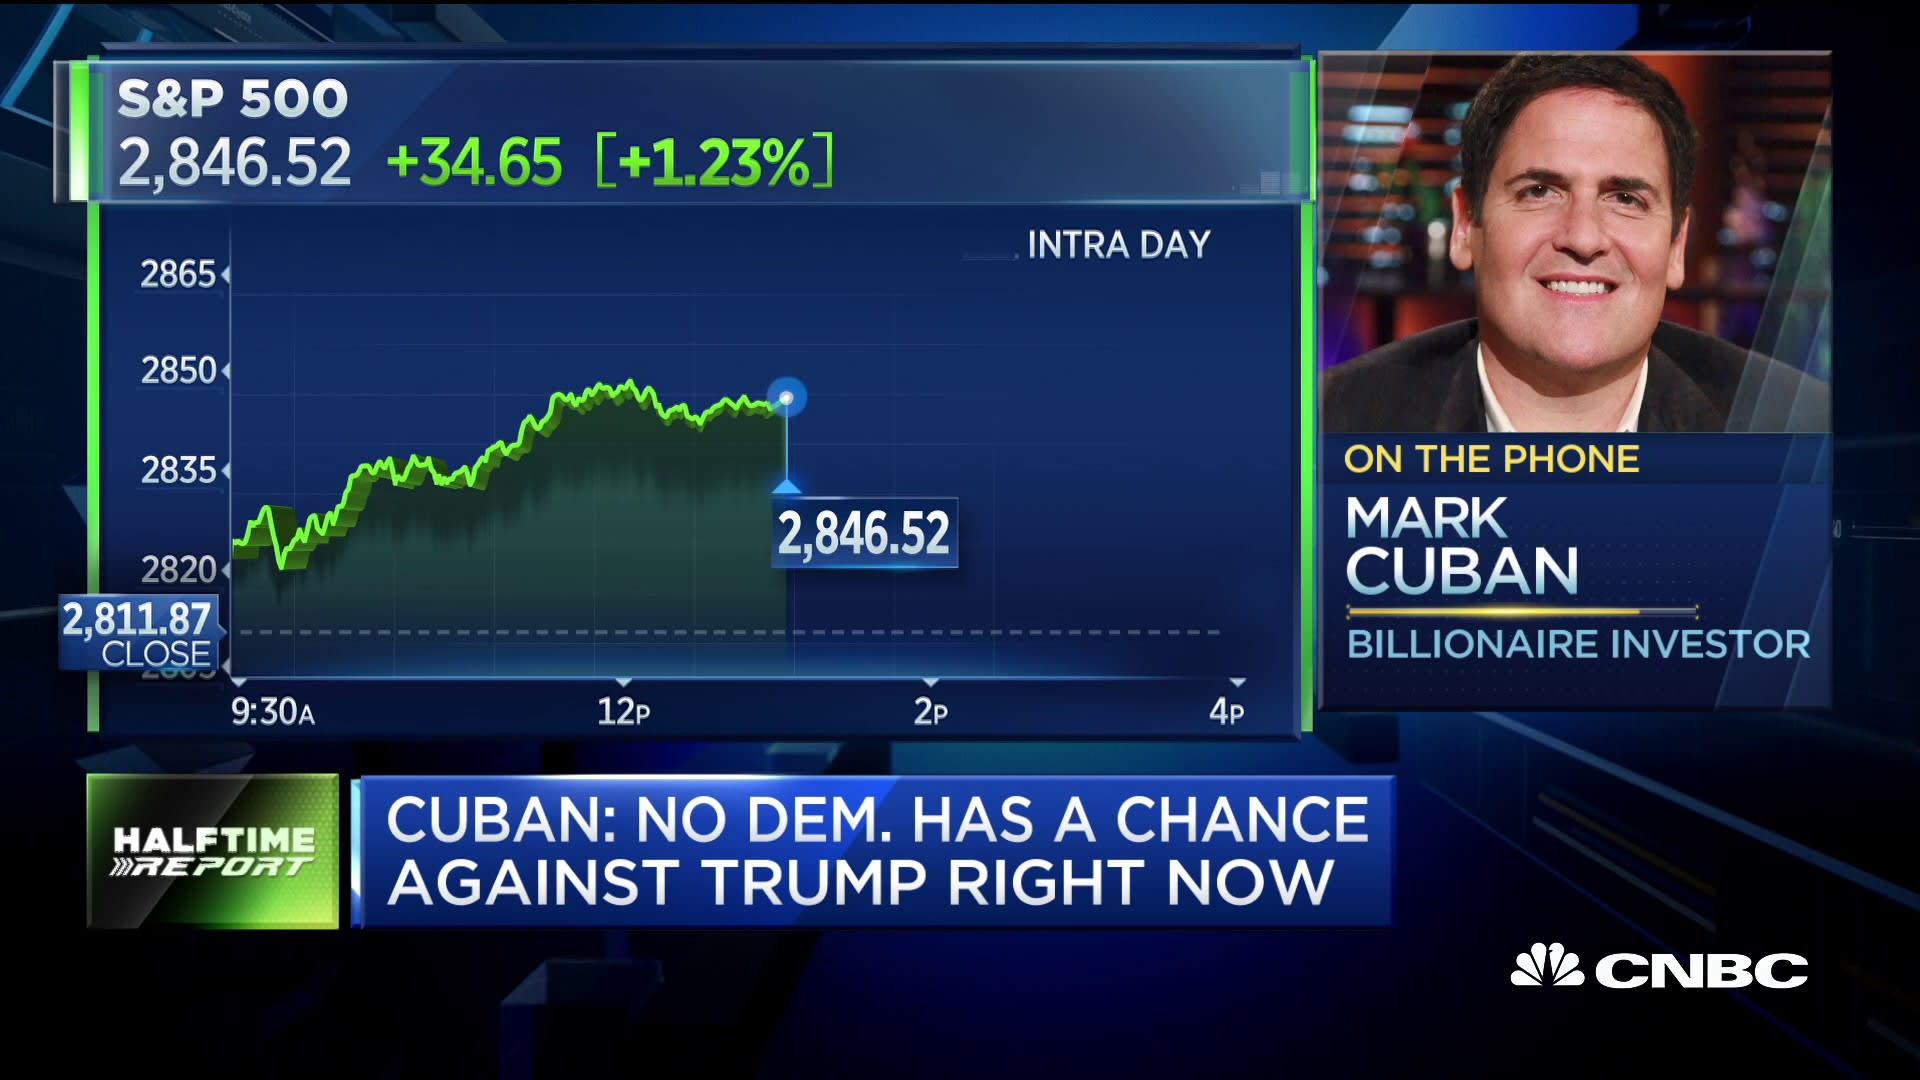 Mark Cuban leaves open possibility of running for president as an independent